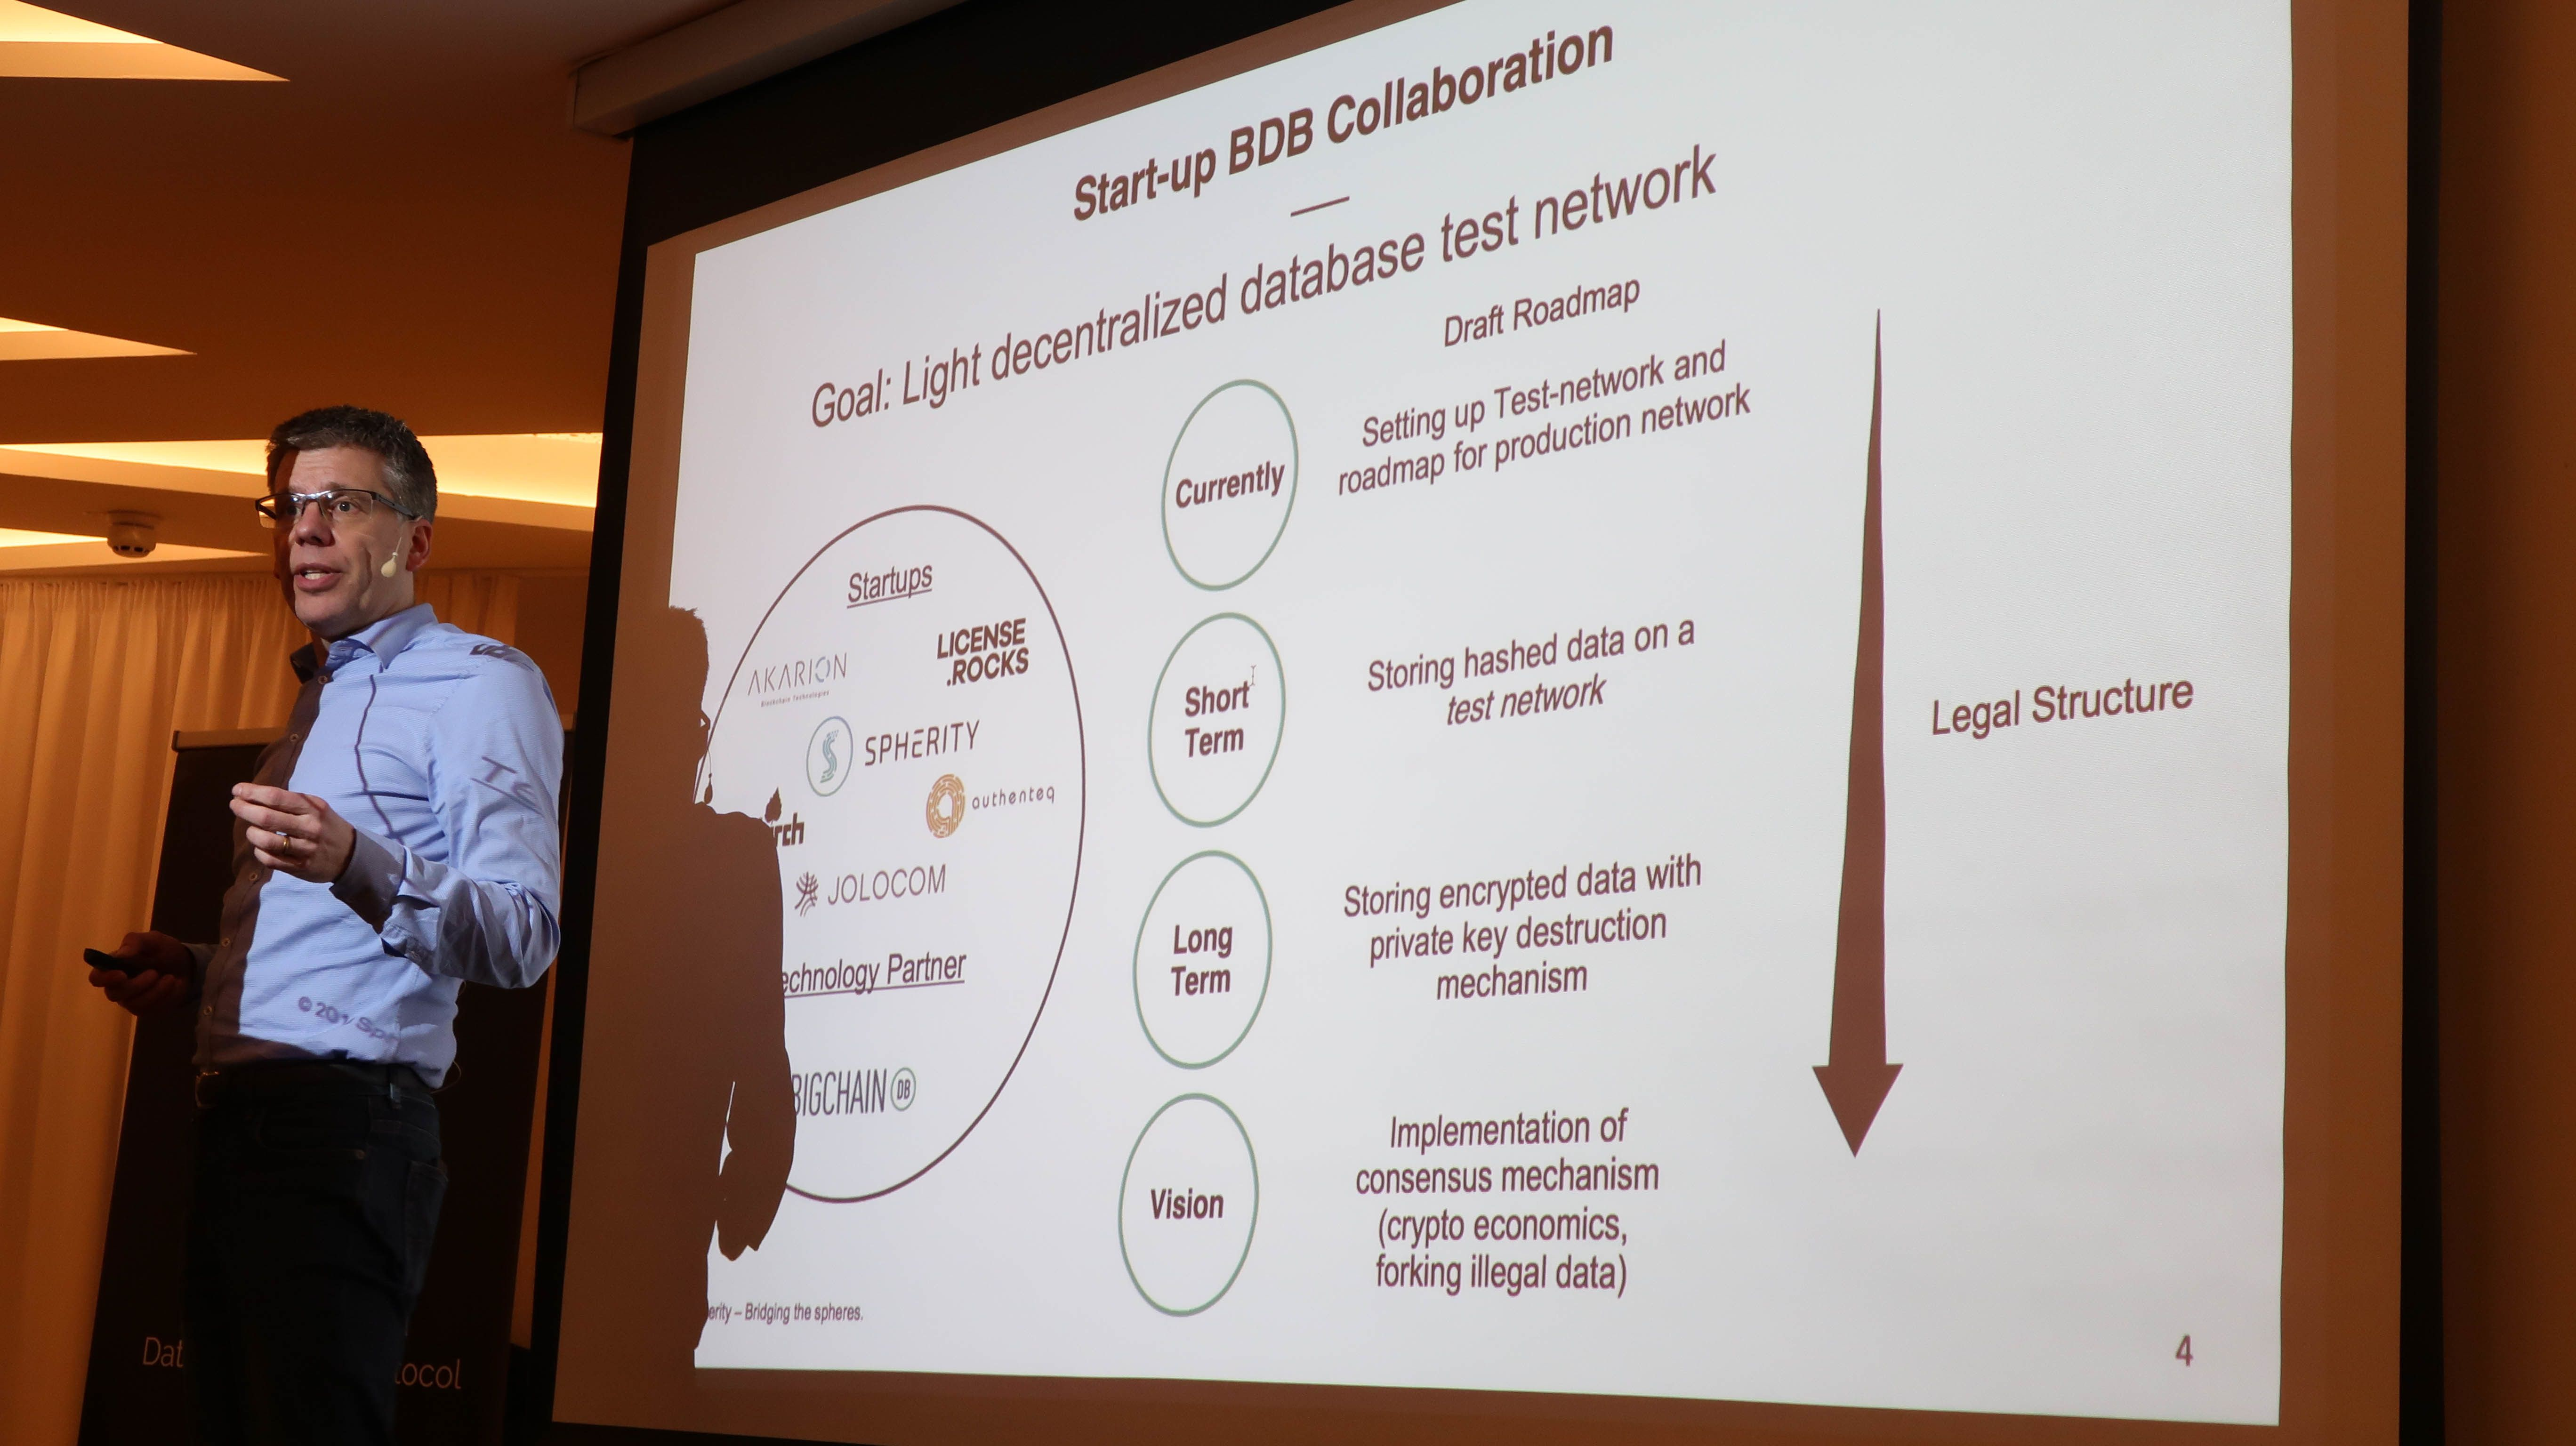 Paradigm Shifts in Decentralized Data Ecosystems - 07 FEB 2018